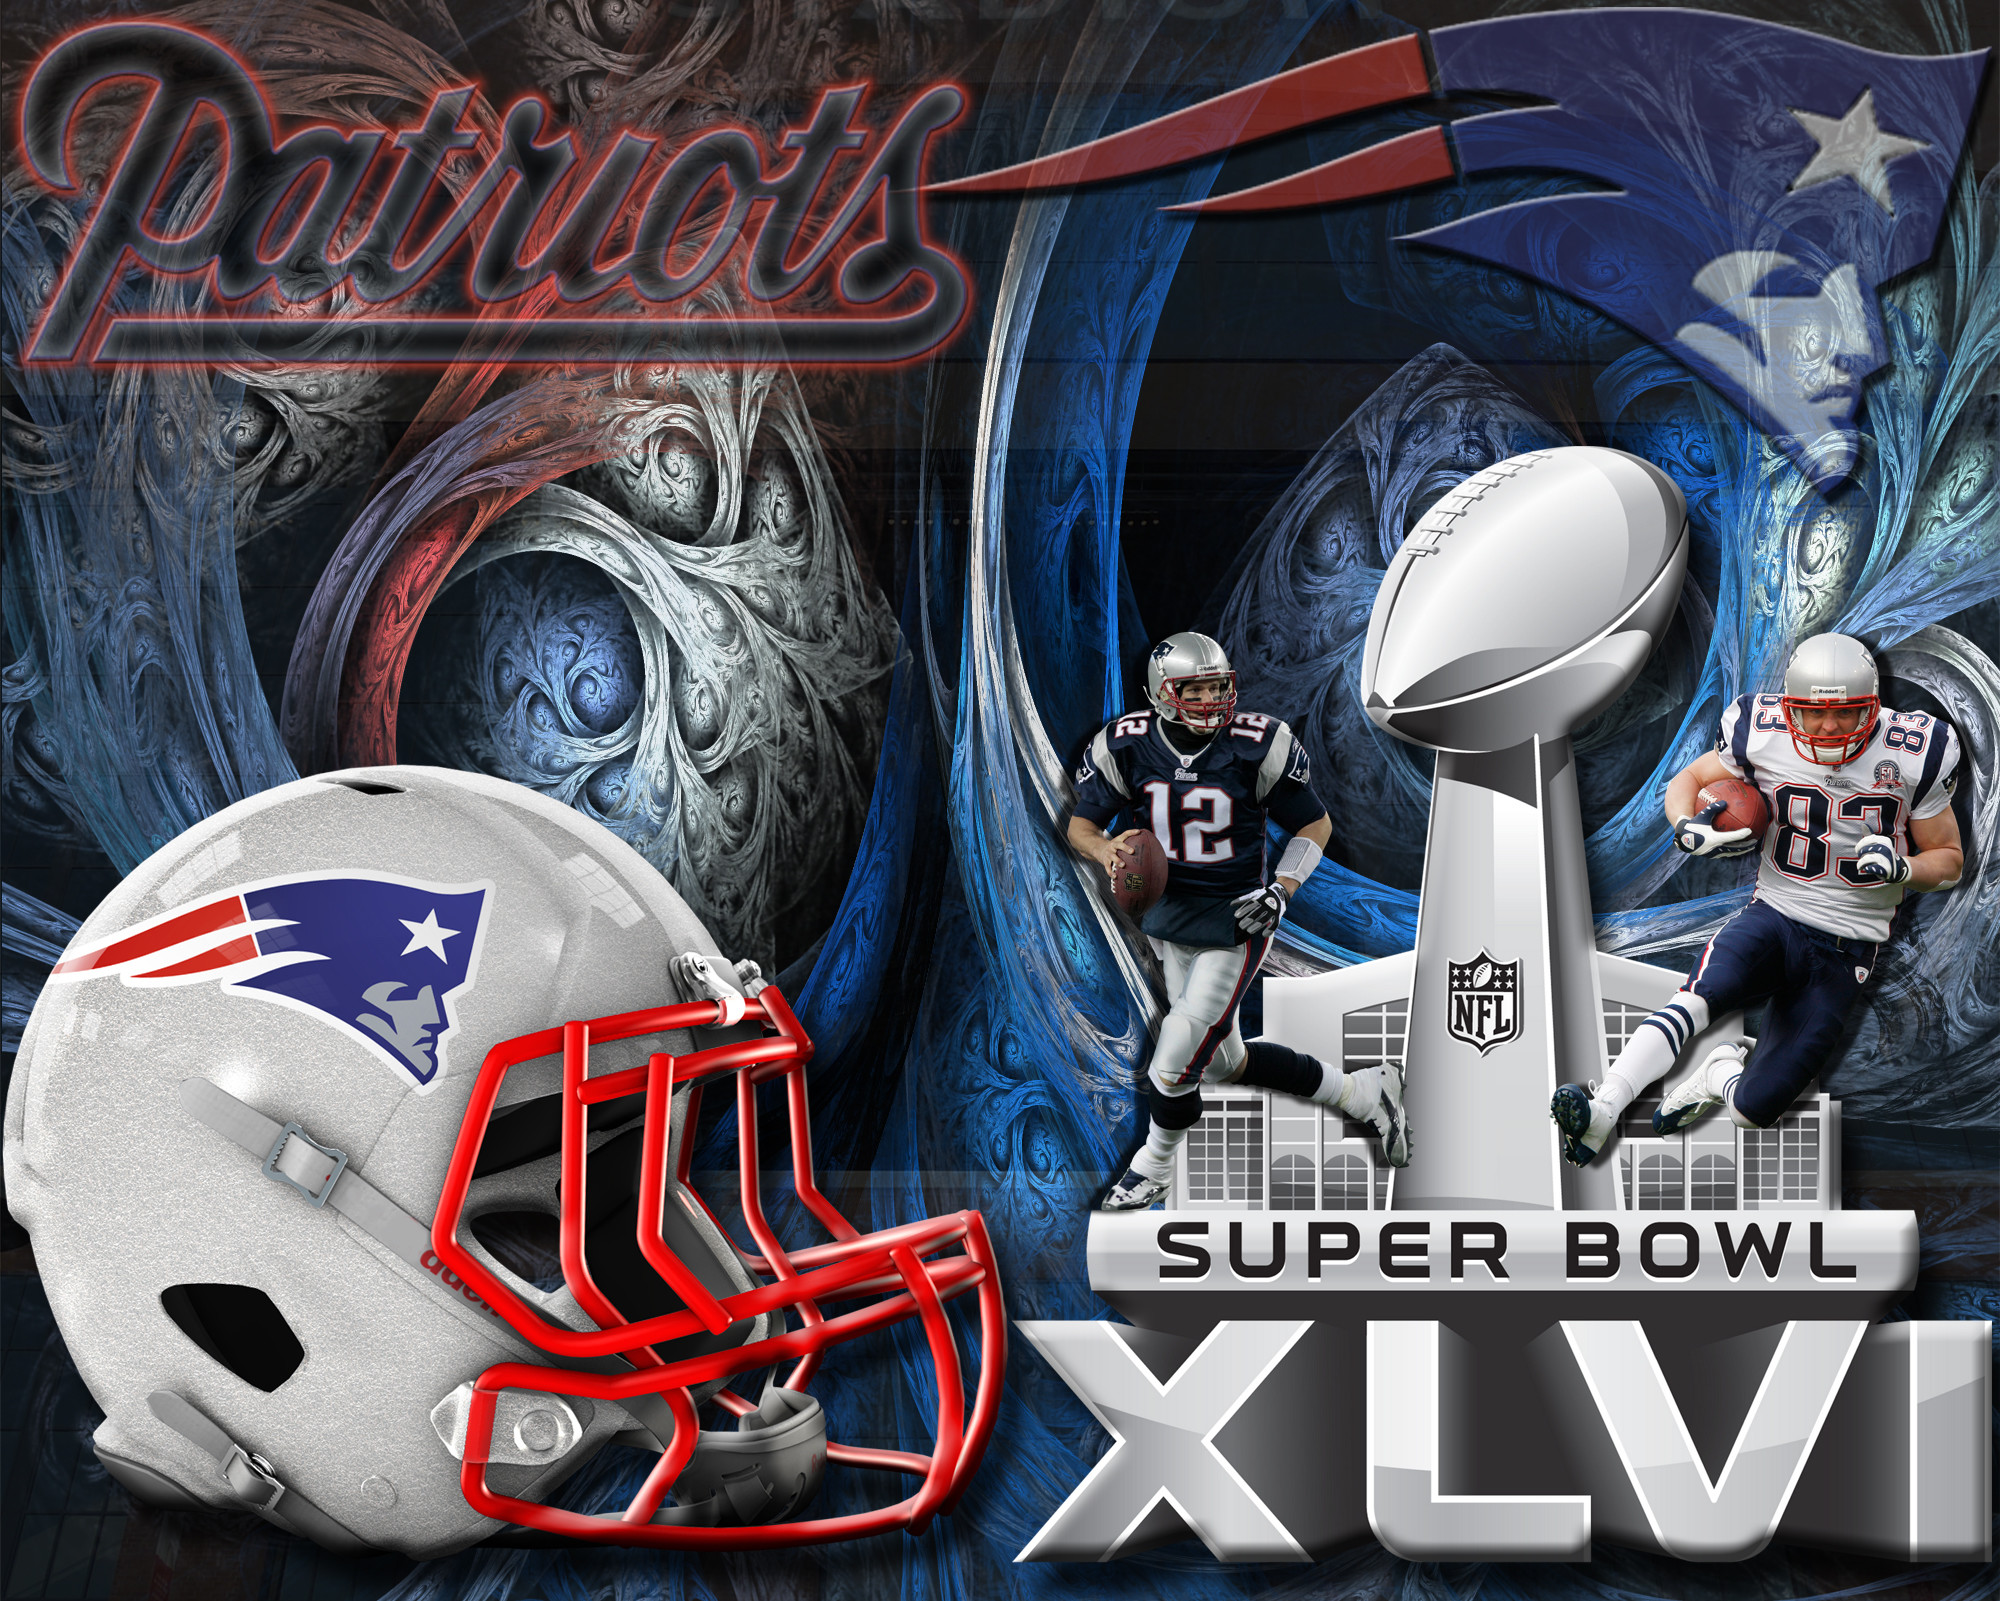 new england patriots wallpapers – www.high-definition-wallpaper.com